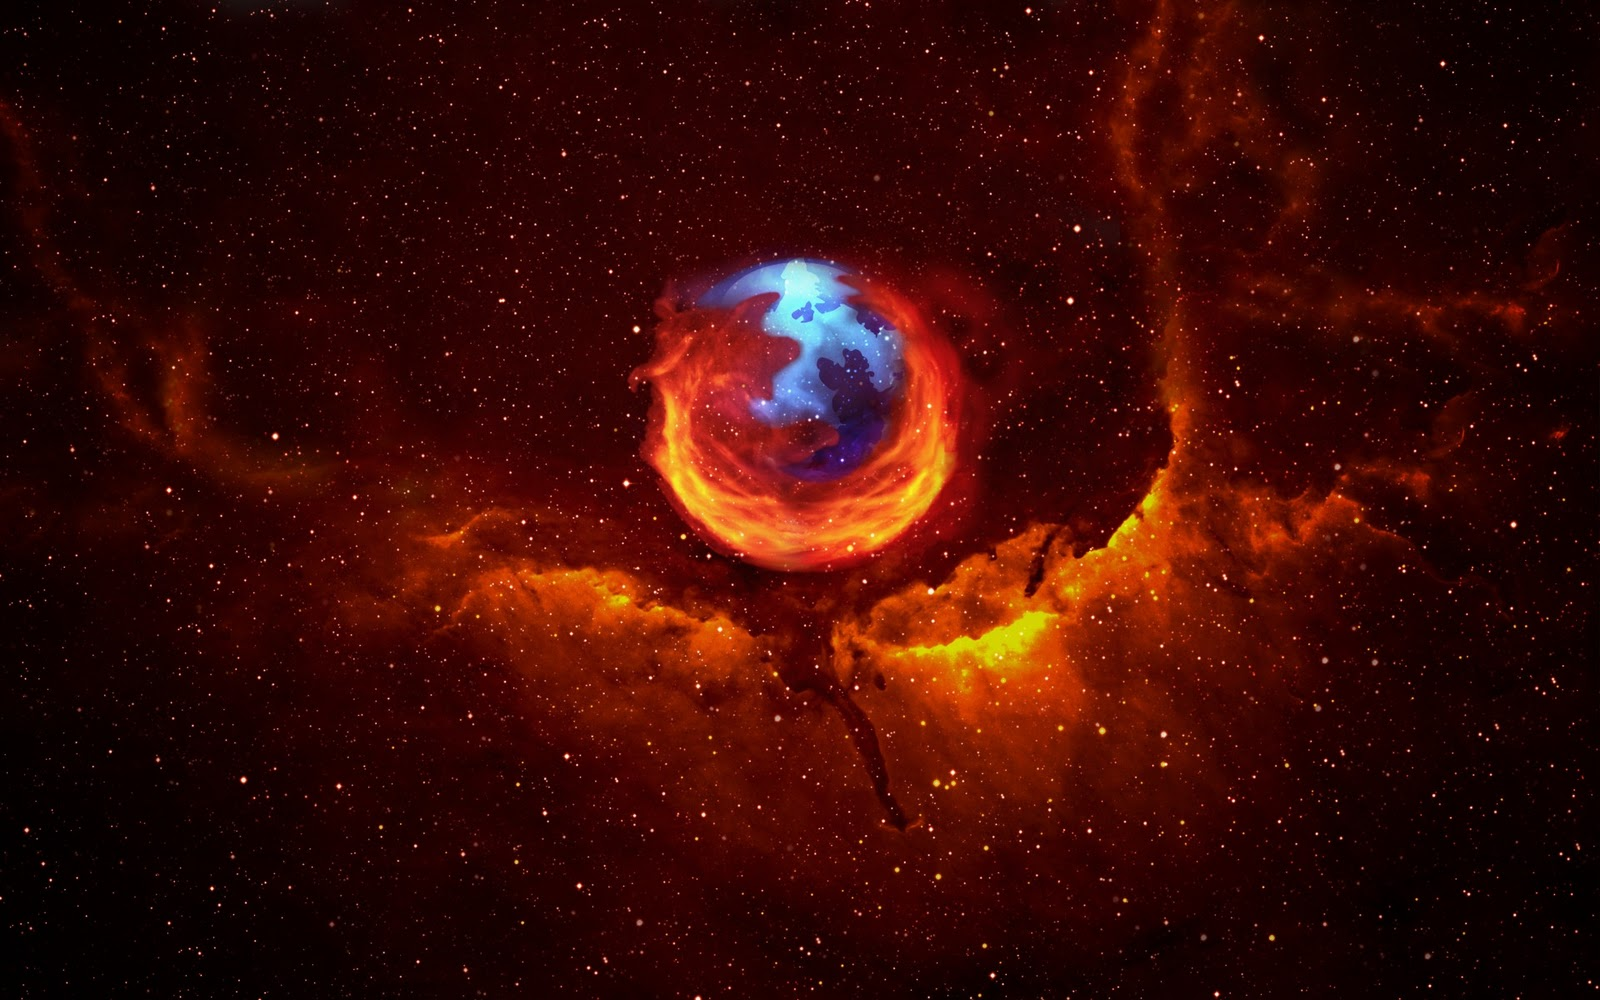 space wallpapers 0t hd space wallpaper 3d graphics firefox space 1600x1000